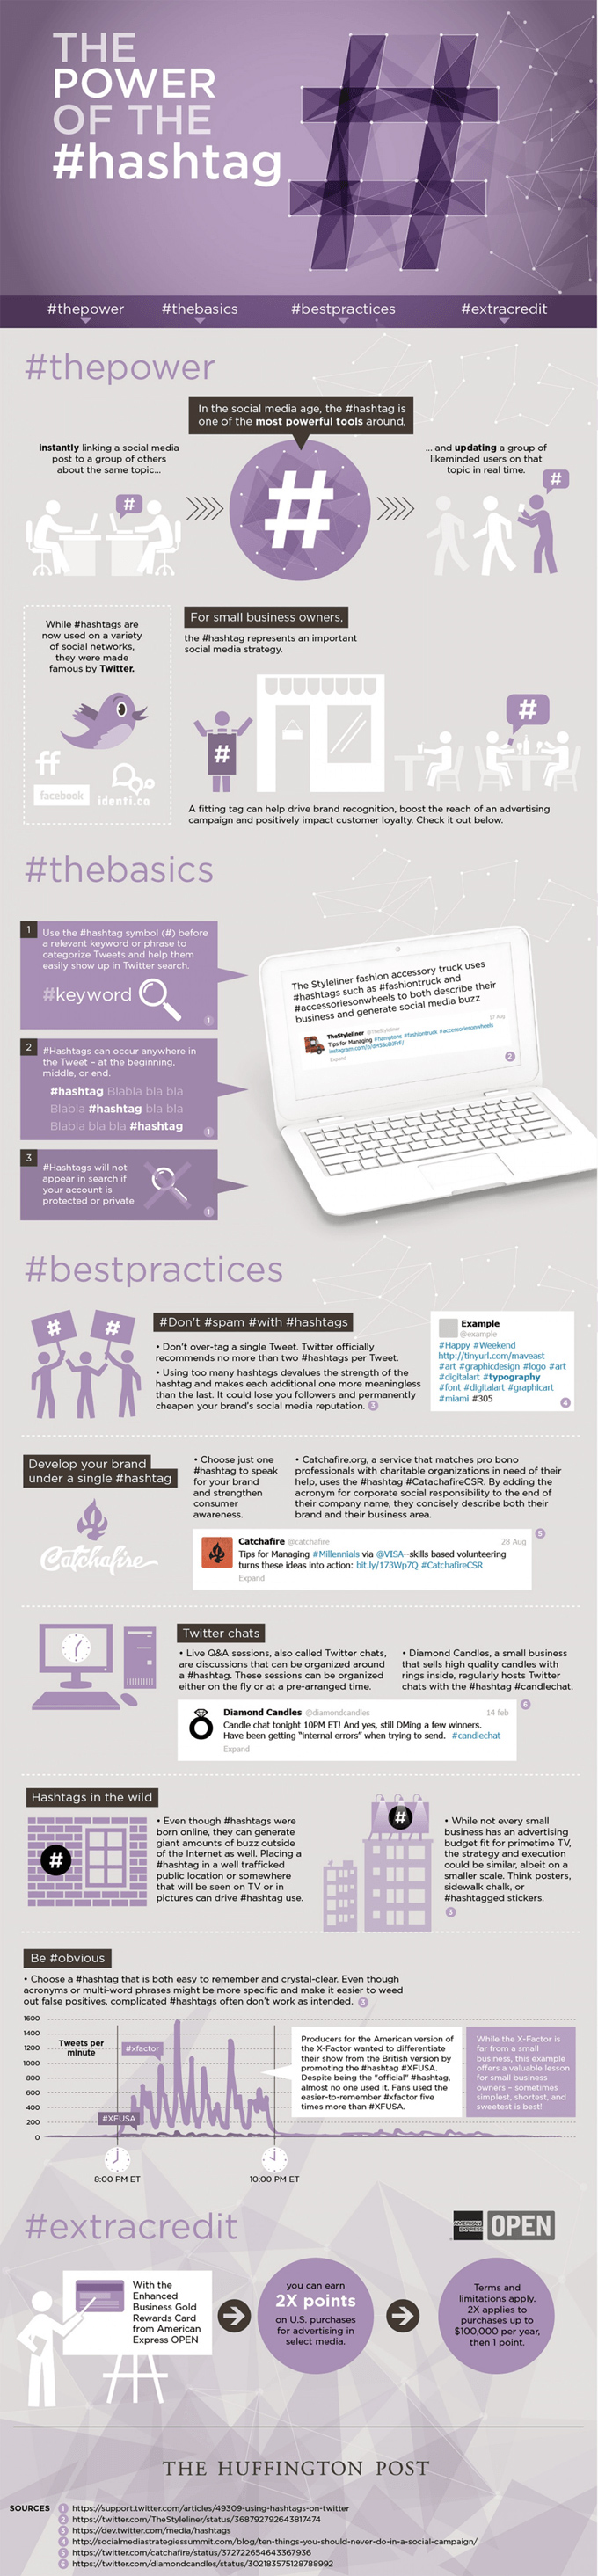 How To Use Hashtags To Grow Your Business [Infographic] - JohnEEngle.com